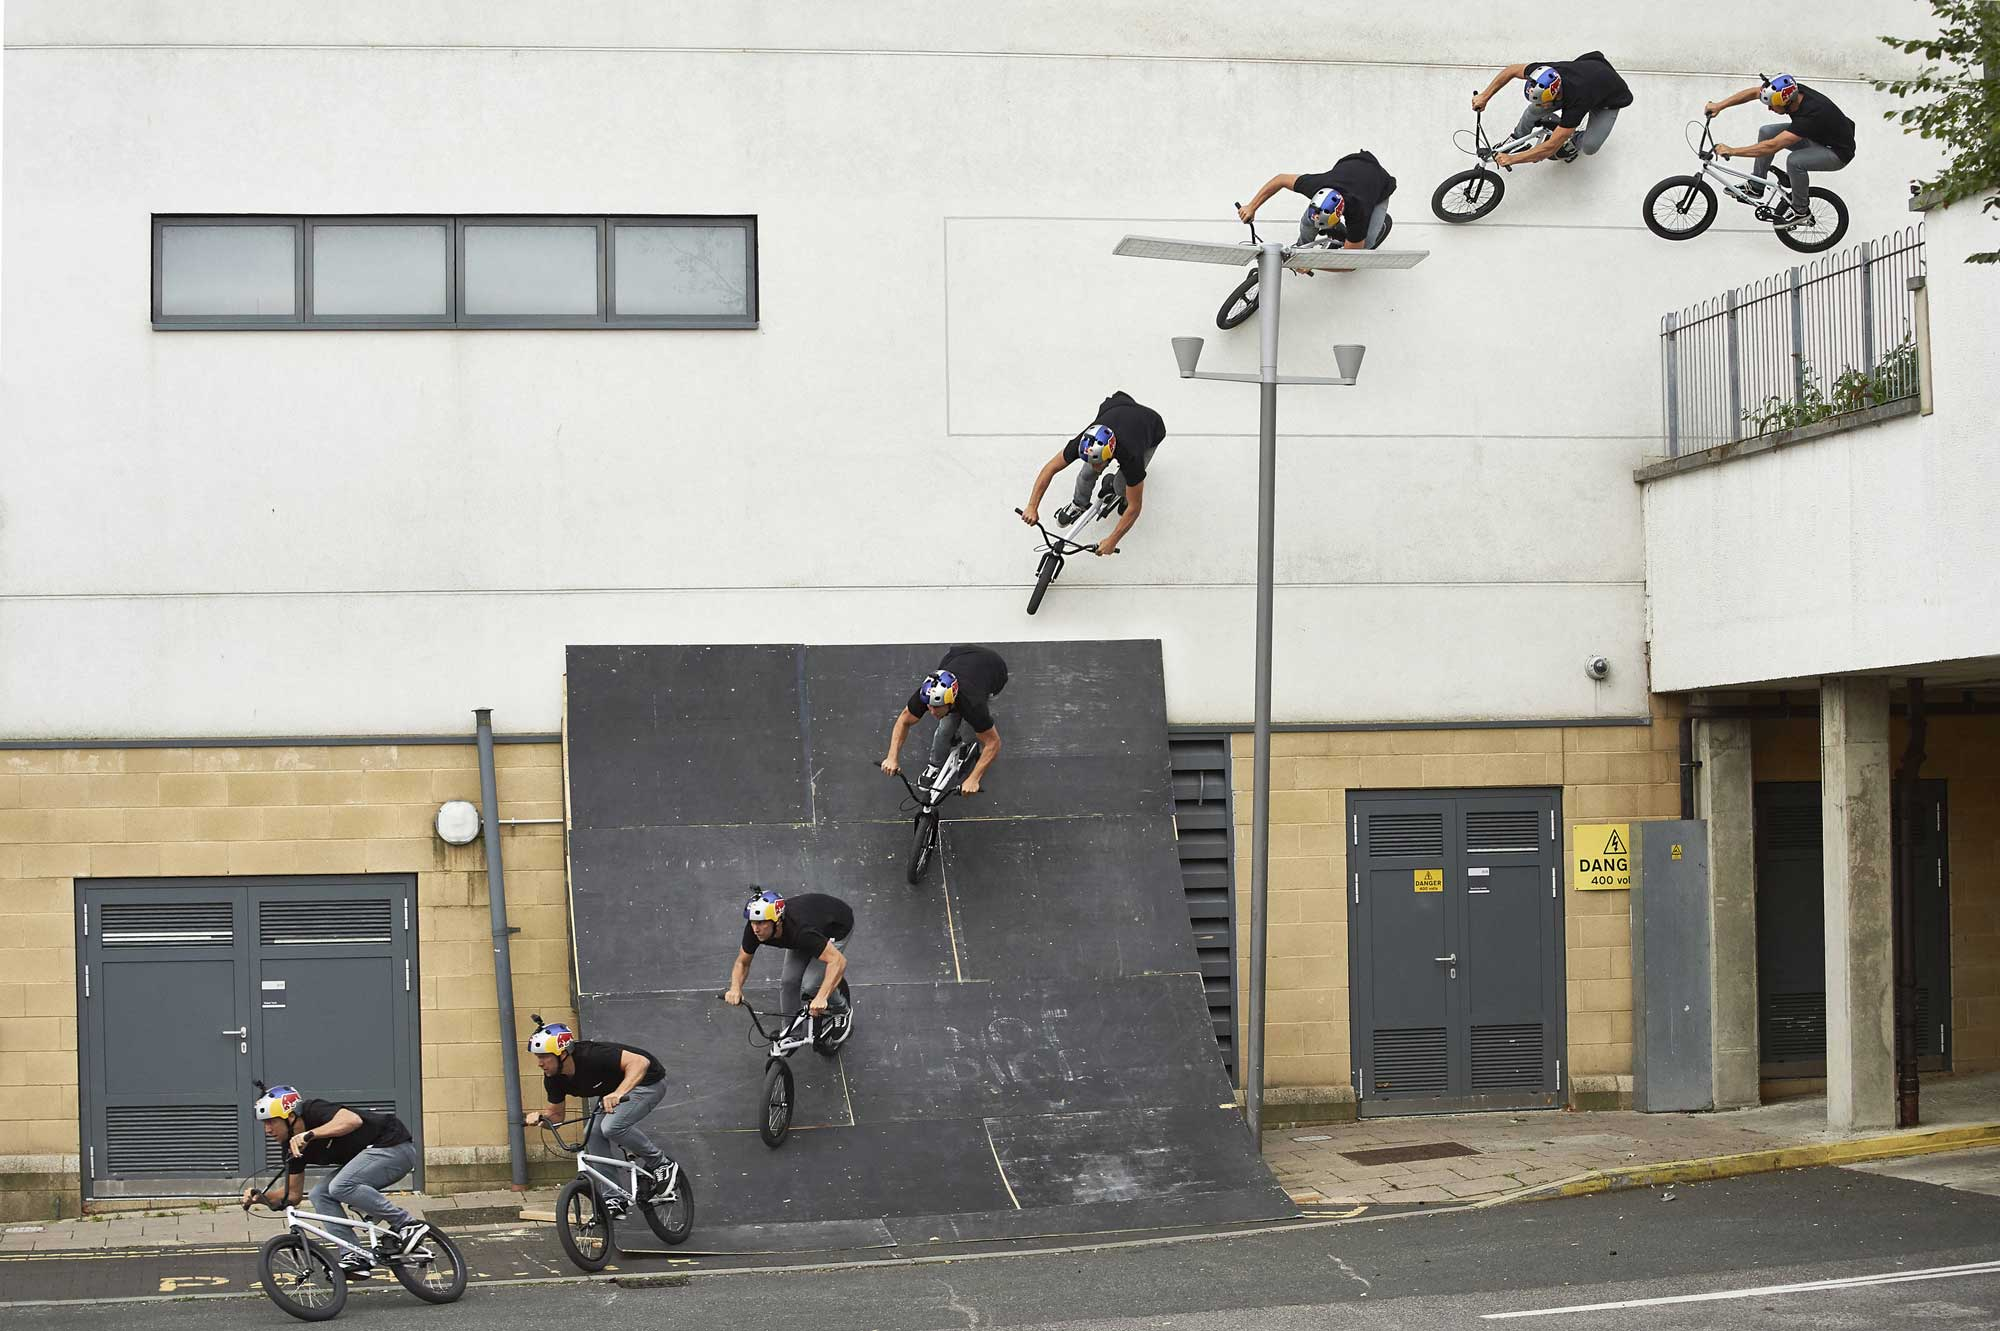 Sebastian-bas-Keep-Walls-video-red bull